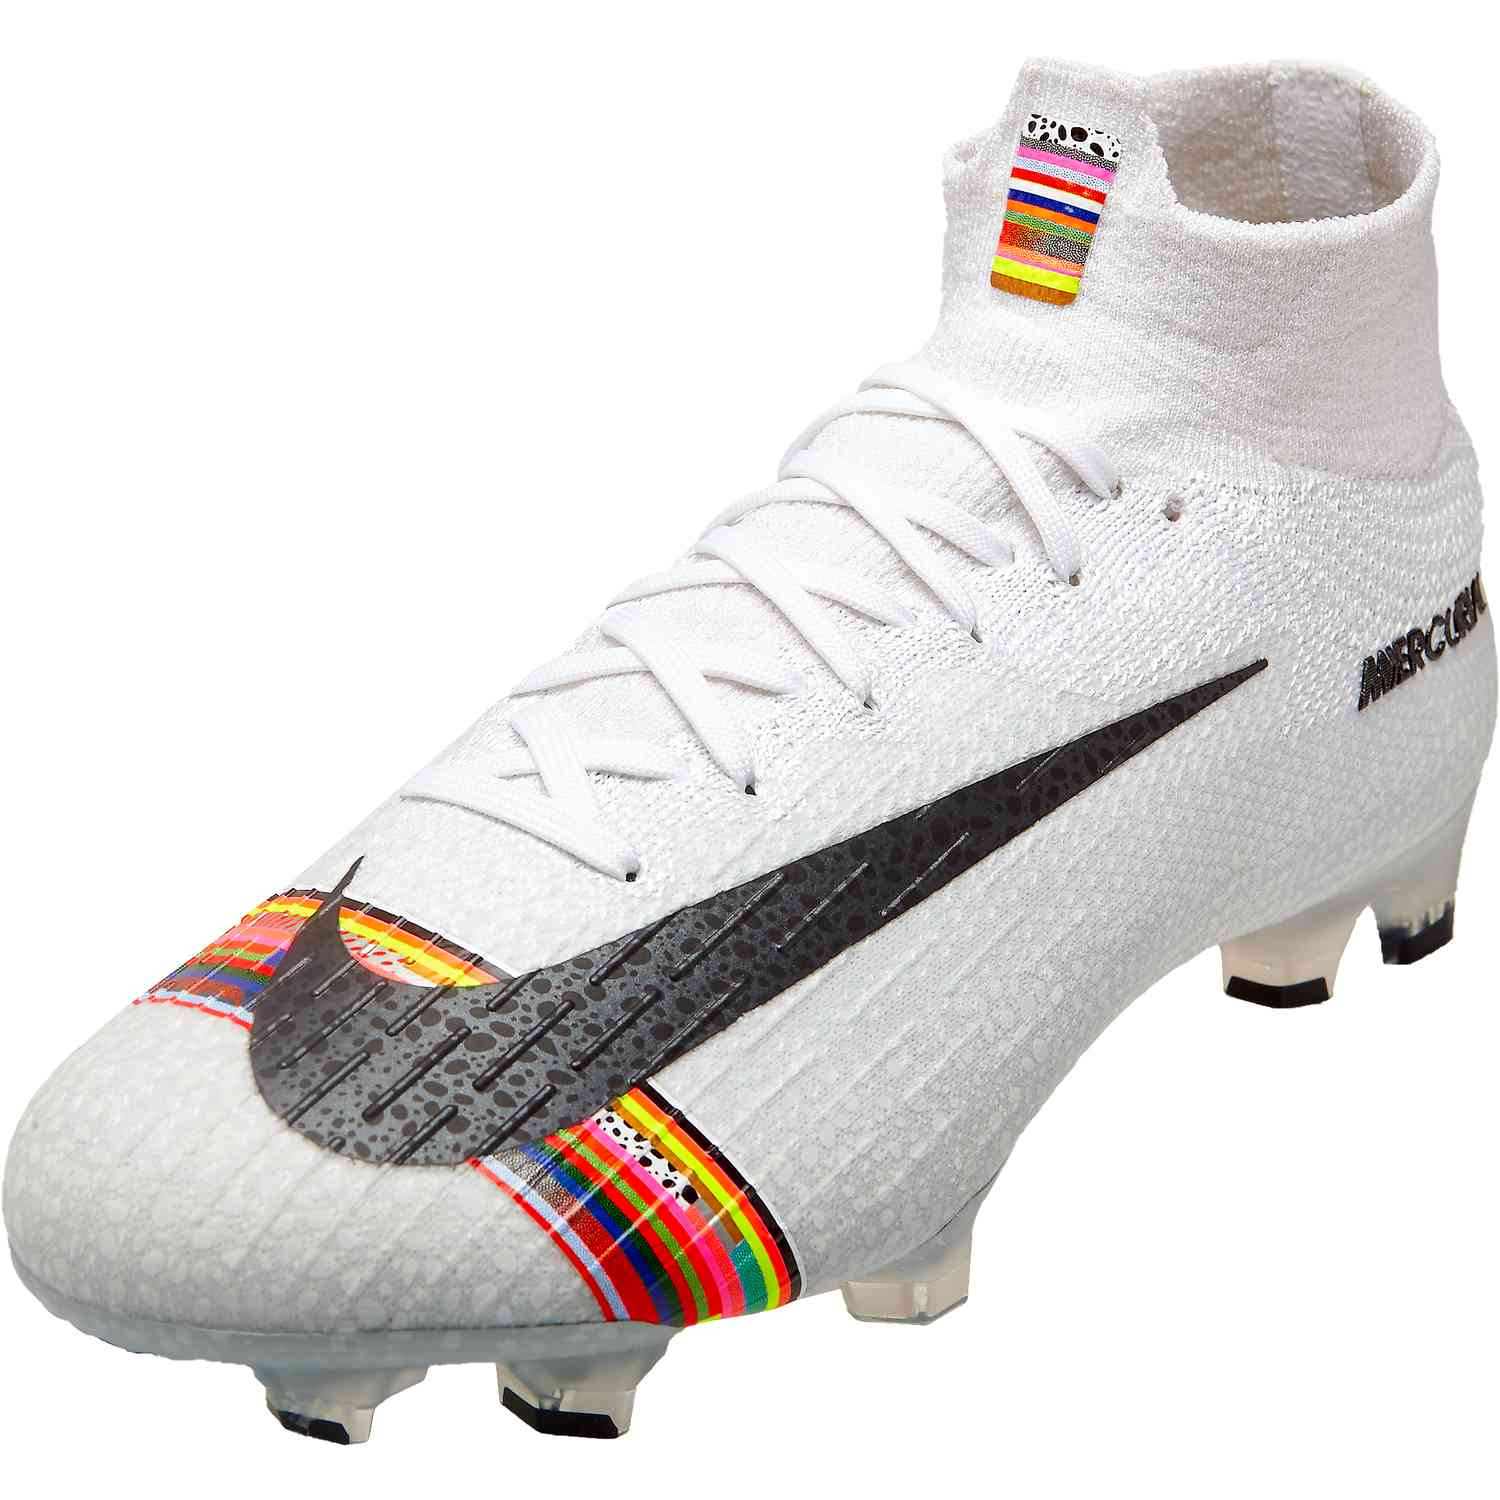 separation shoes a8ff0 a8840 Nike Mercurial Superfly 360 Elite SE FG – Level Up